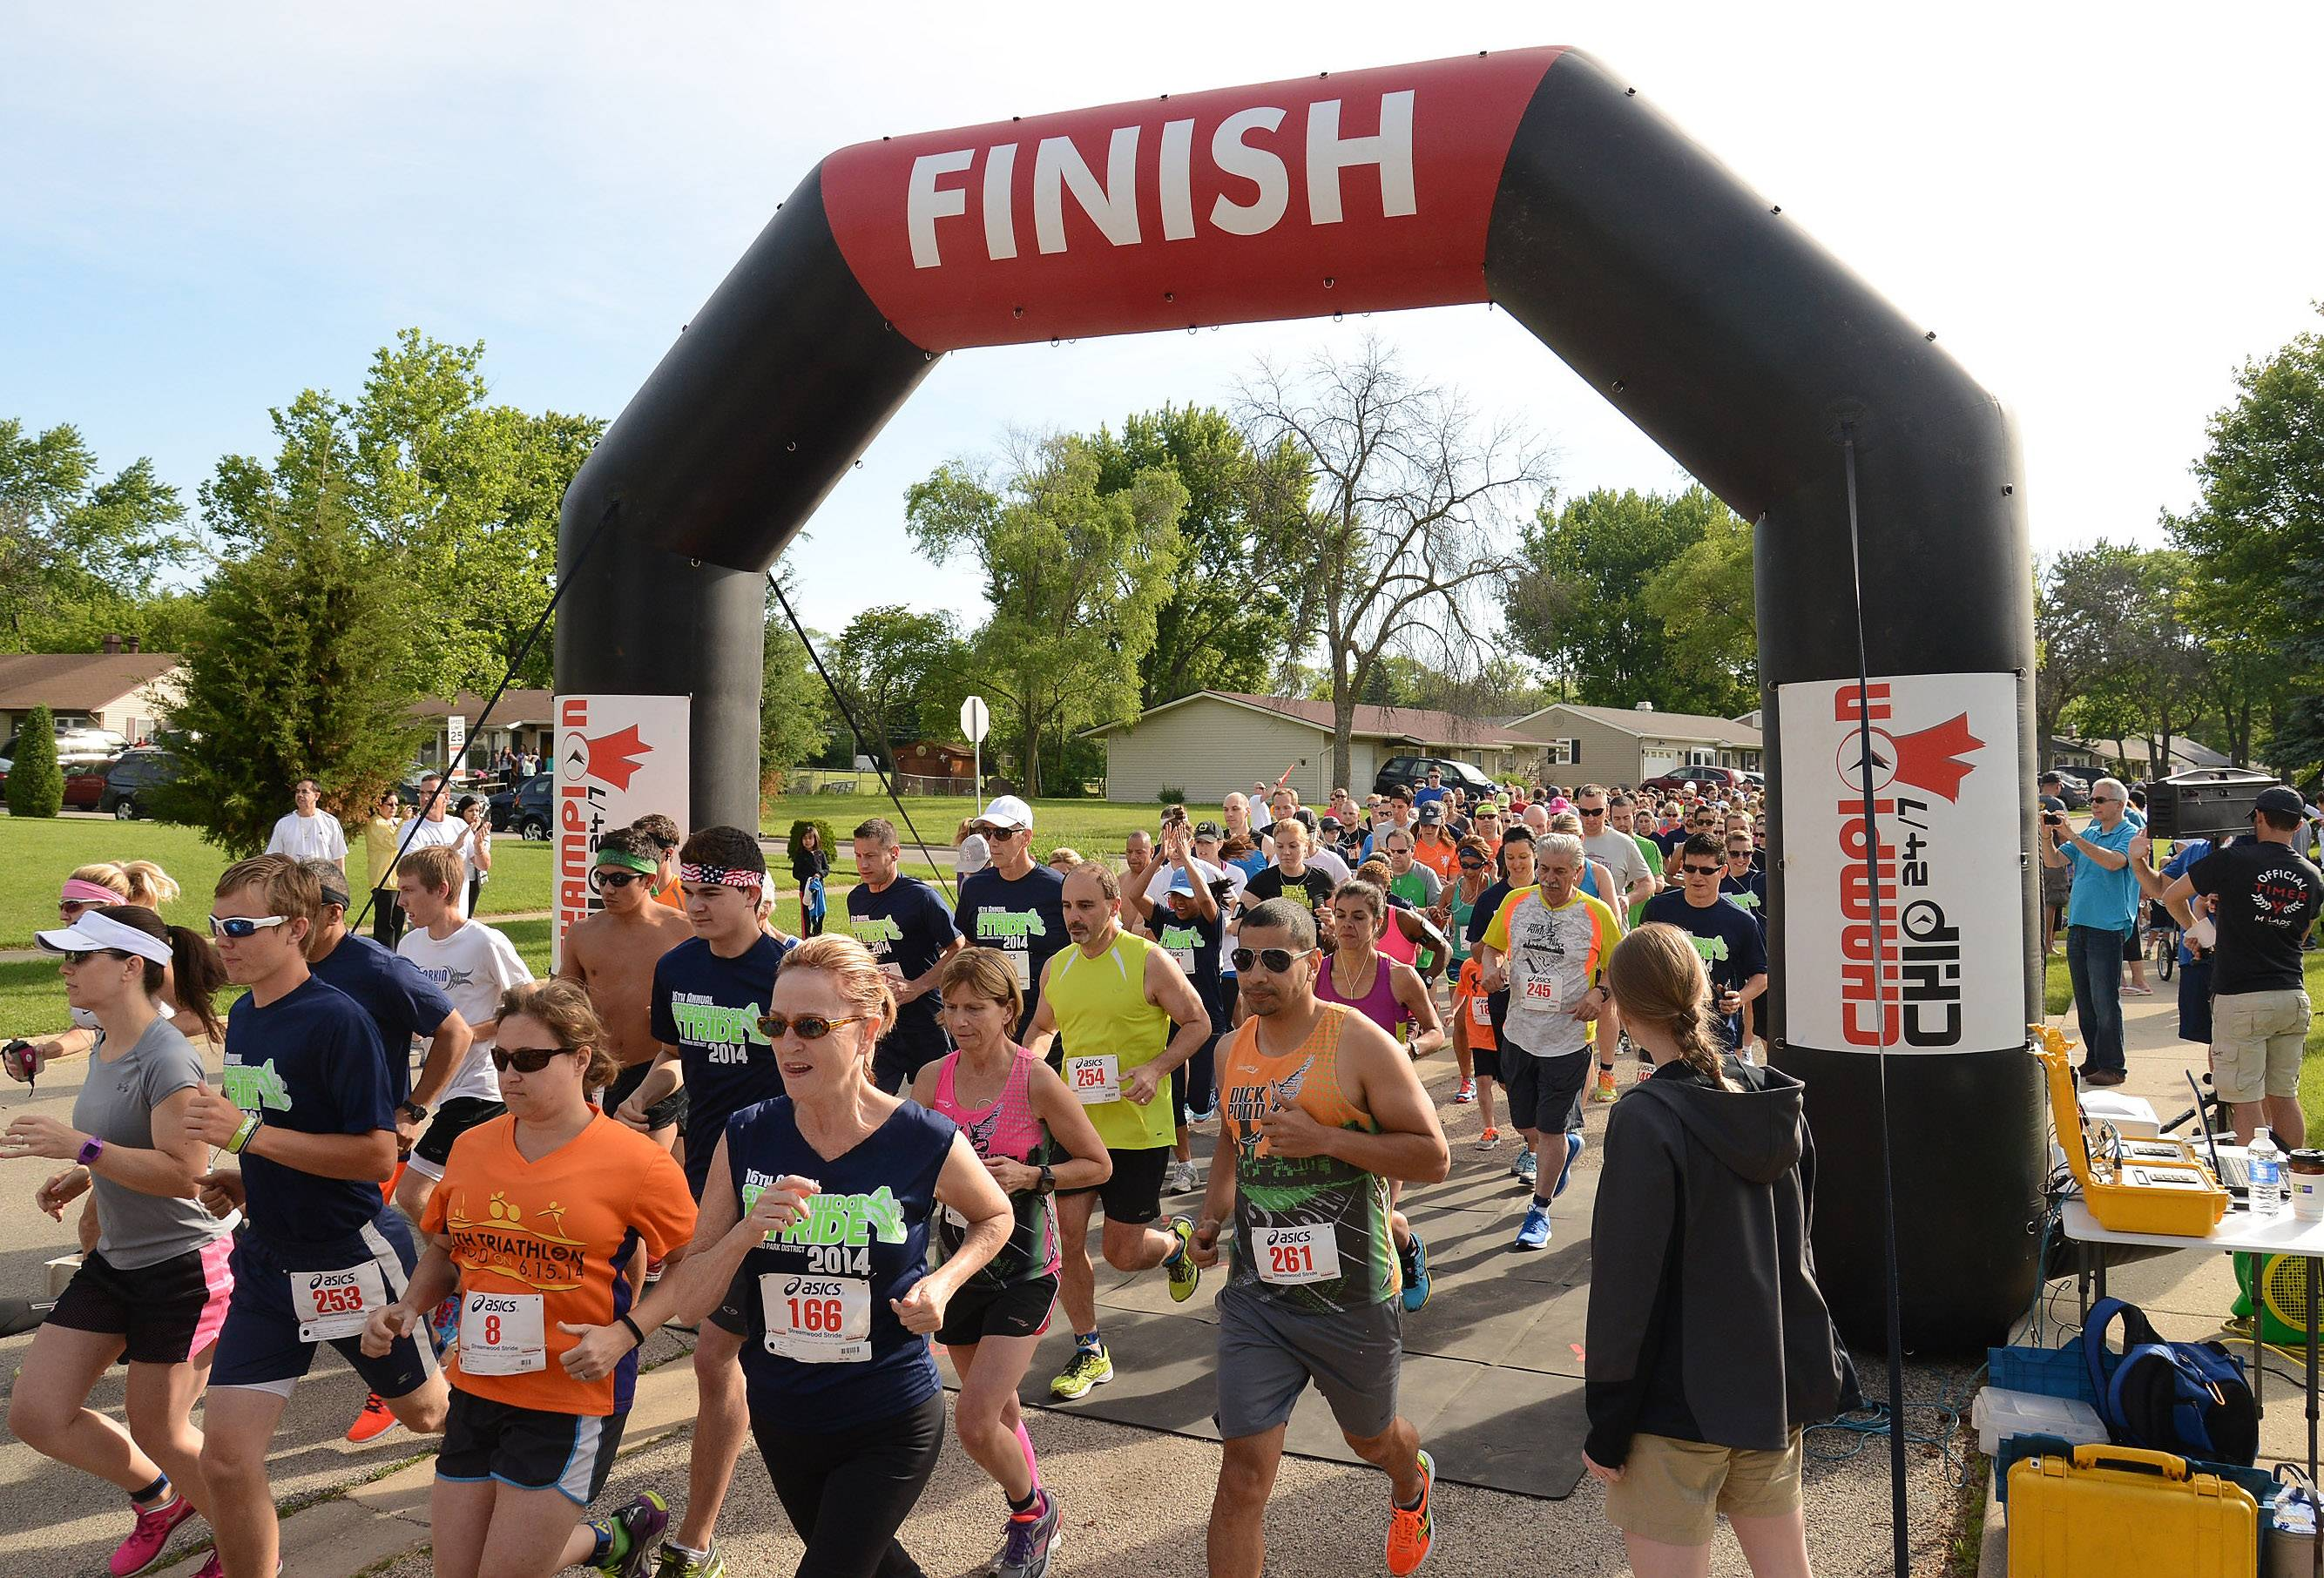 Over 250 runners take to the street at the Streamwood Stride 5K/10K/Fun Run Saturday morning at the Park Place Family Recreation Center.